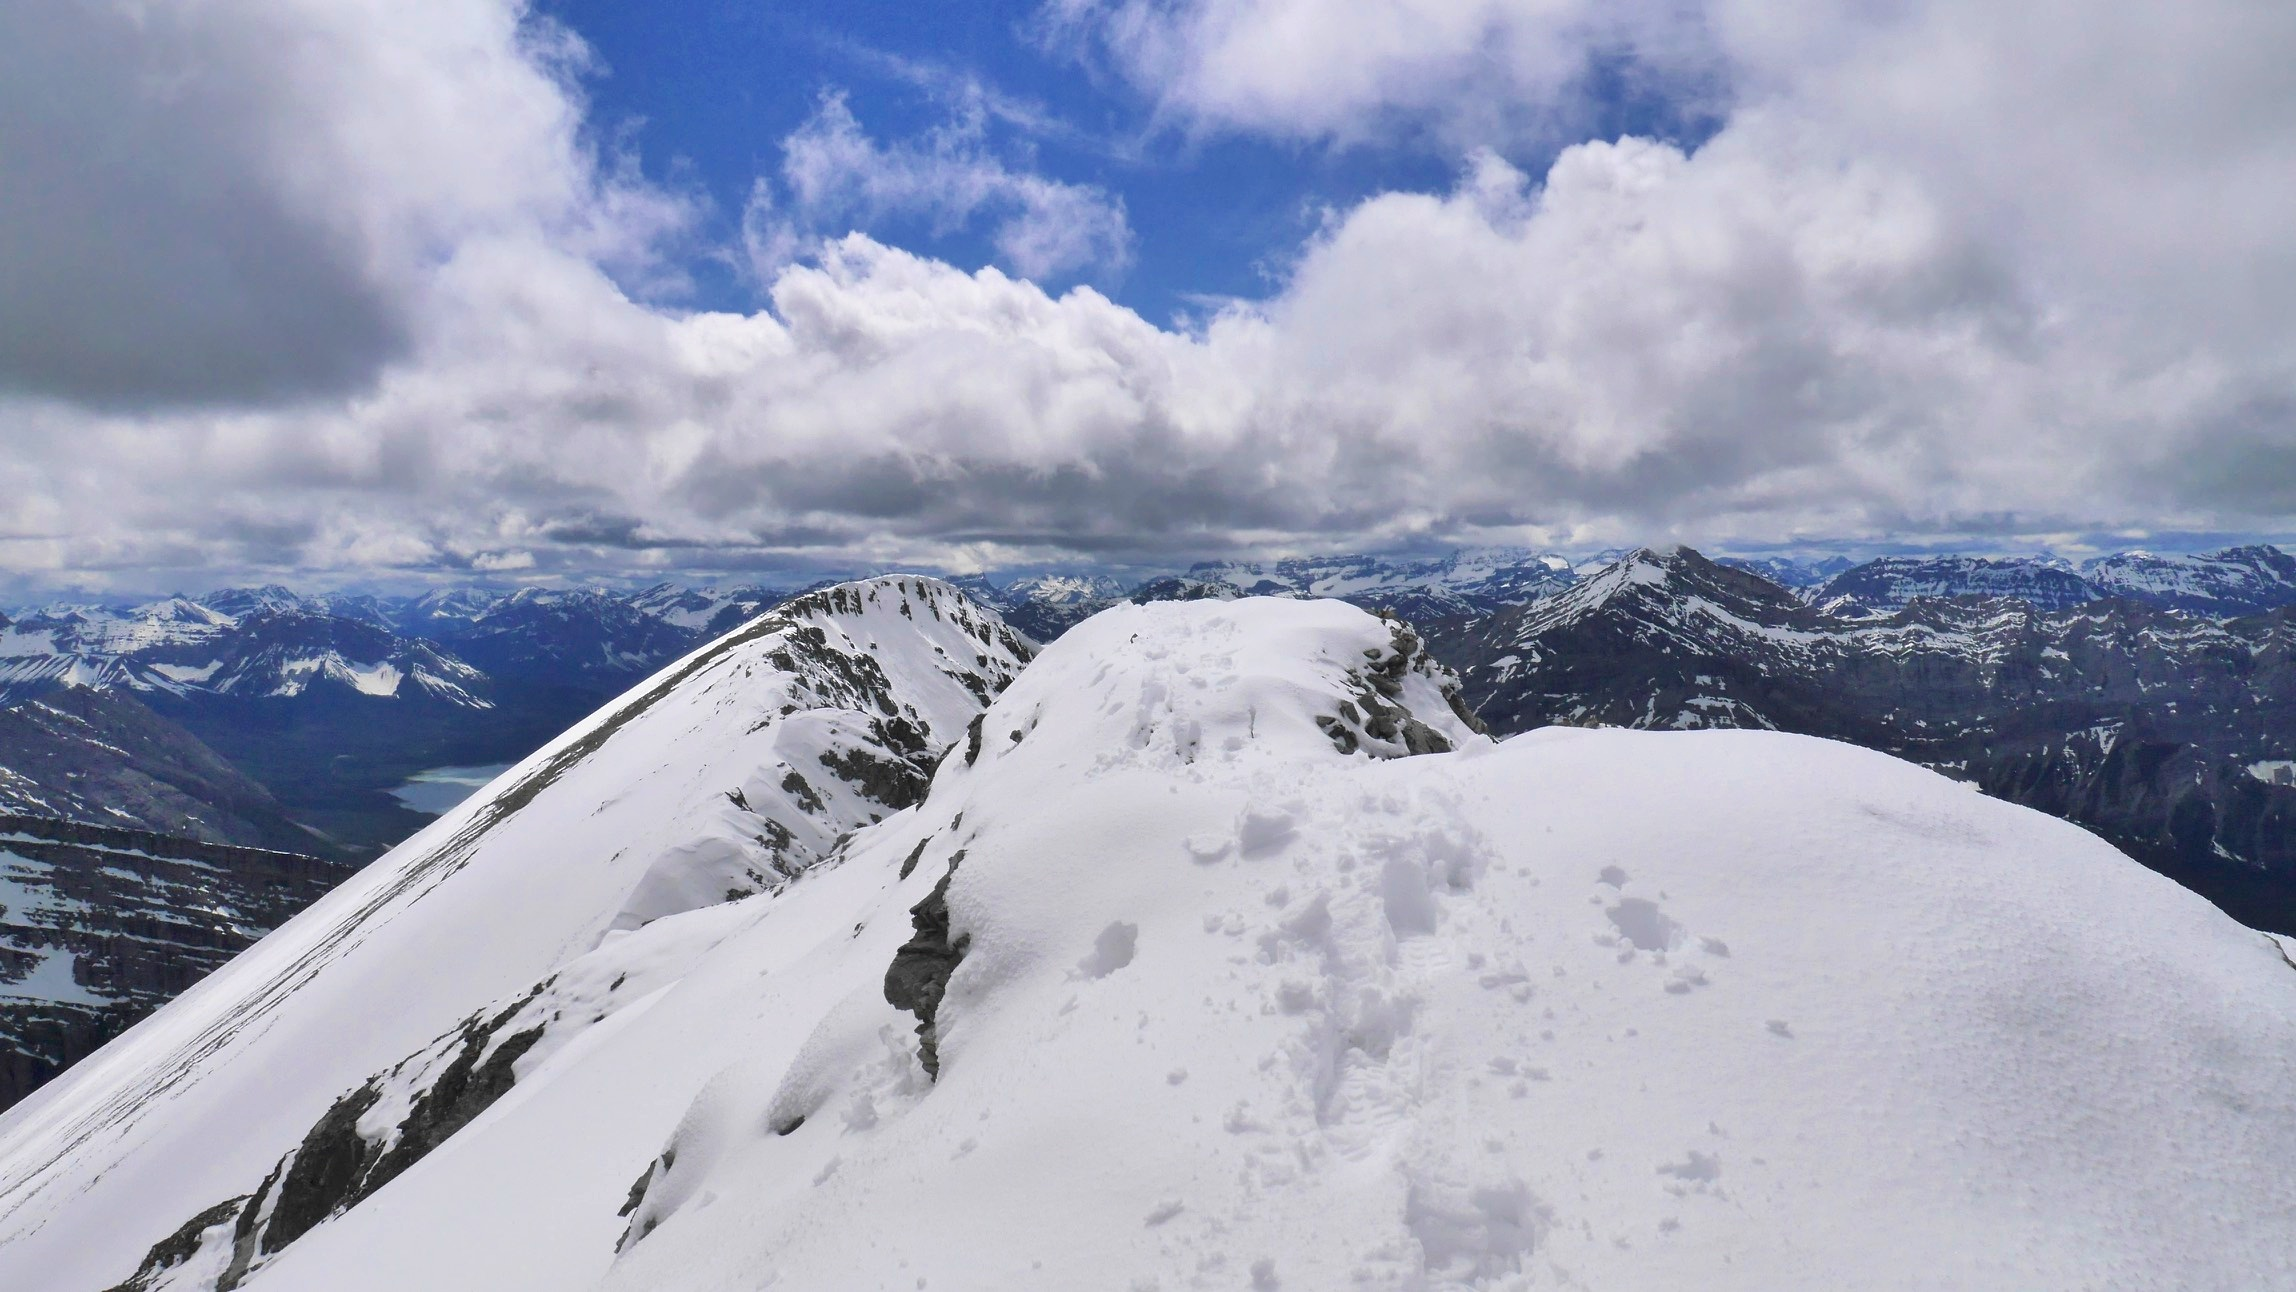 The summit of Mt. Lougheed 3,107m